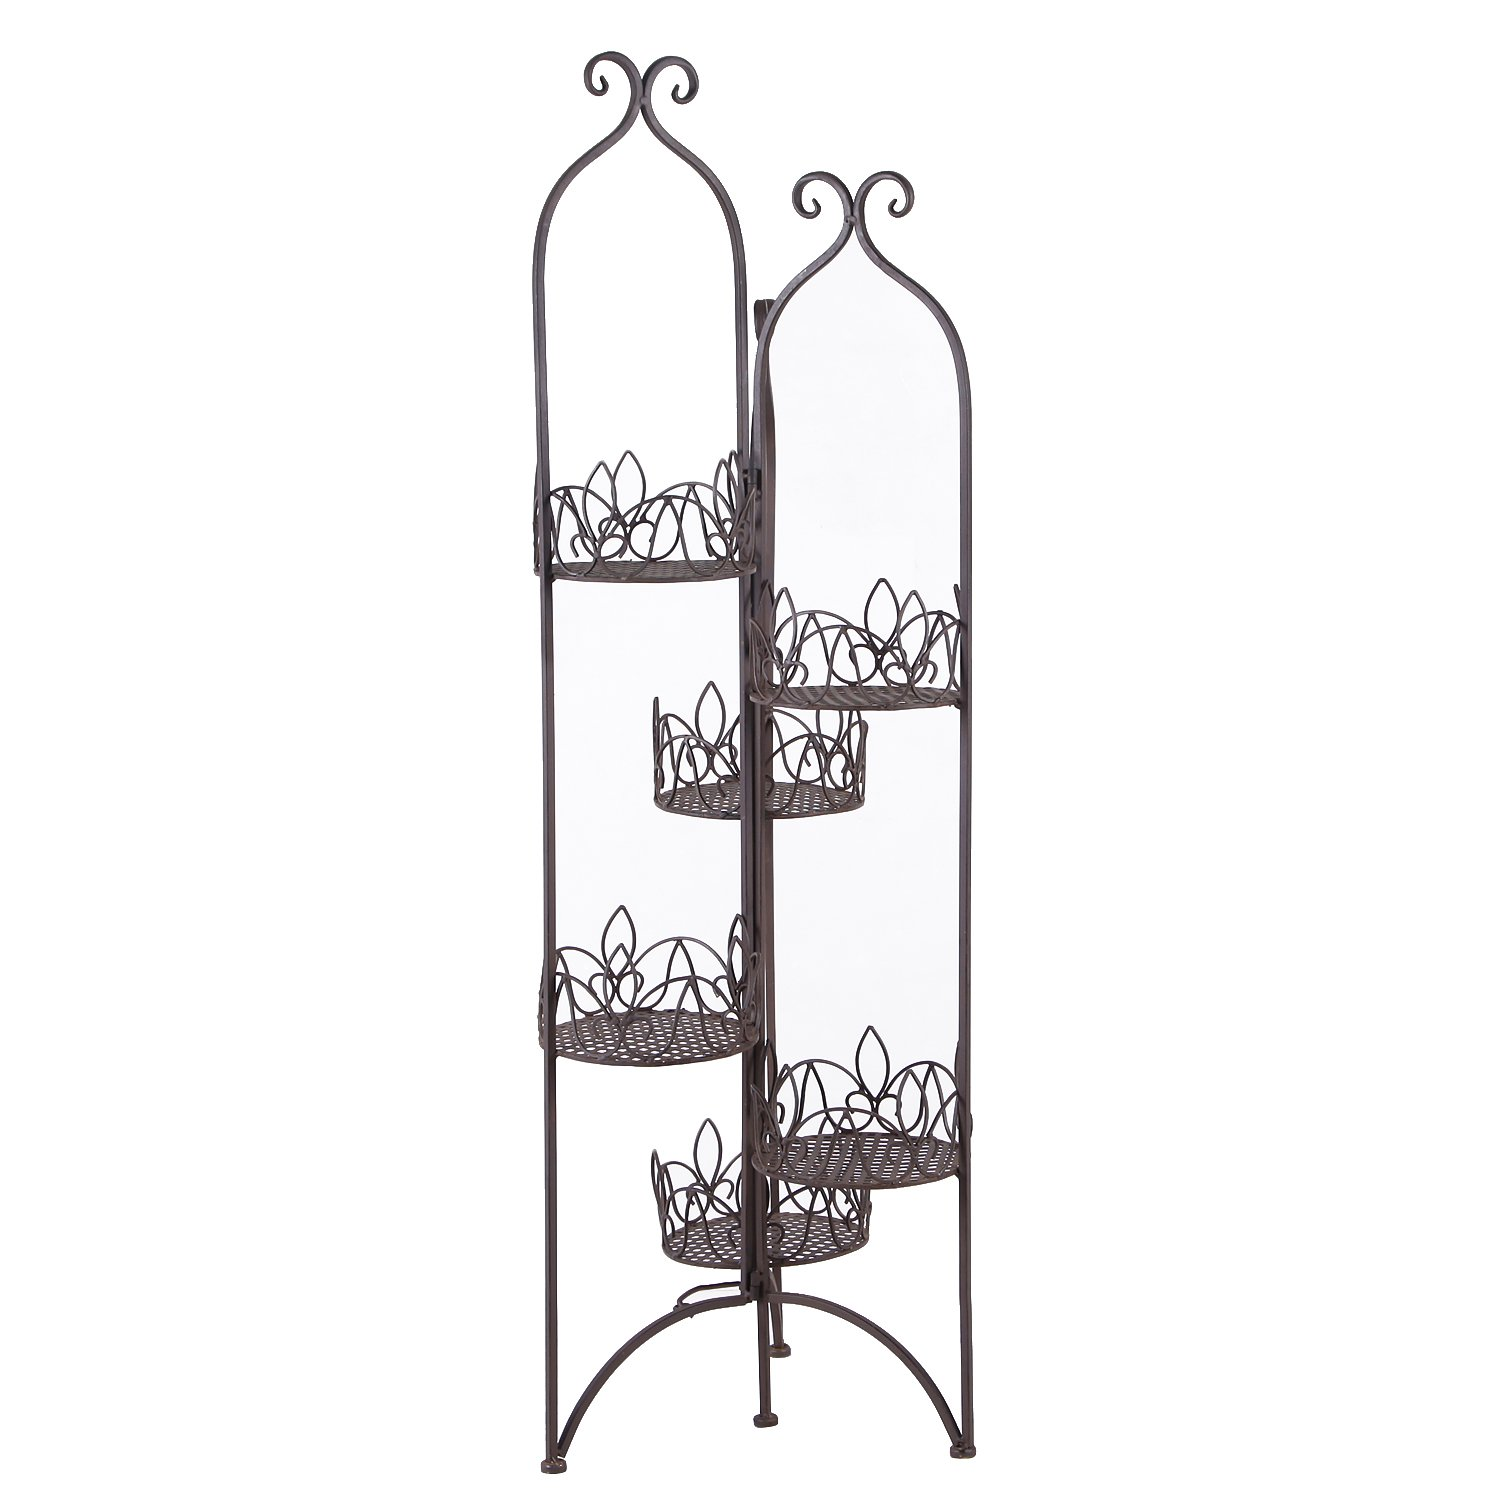 Homebeez 6-Tiered Scroll Classic Plant Stand Decorative Metal Garden Patio Flower Pot Rack Display Shelf Holds 6-Flower Pot with Modern Design (6 tired)